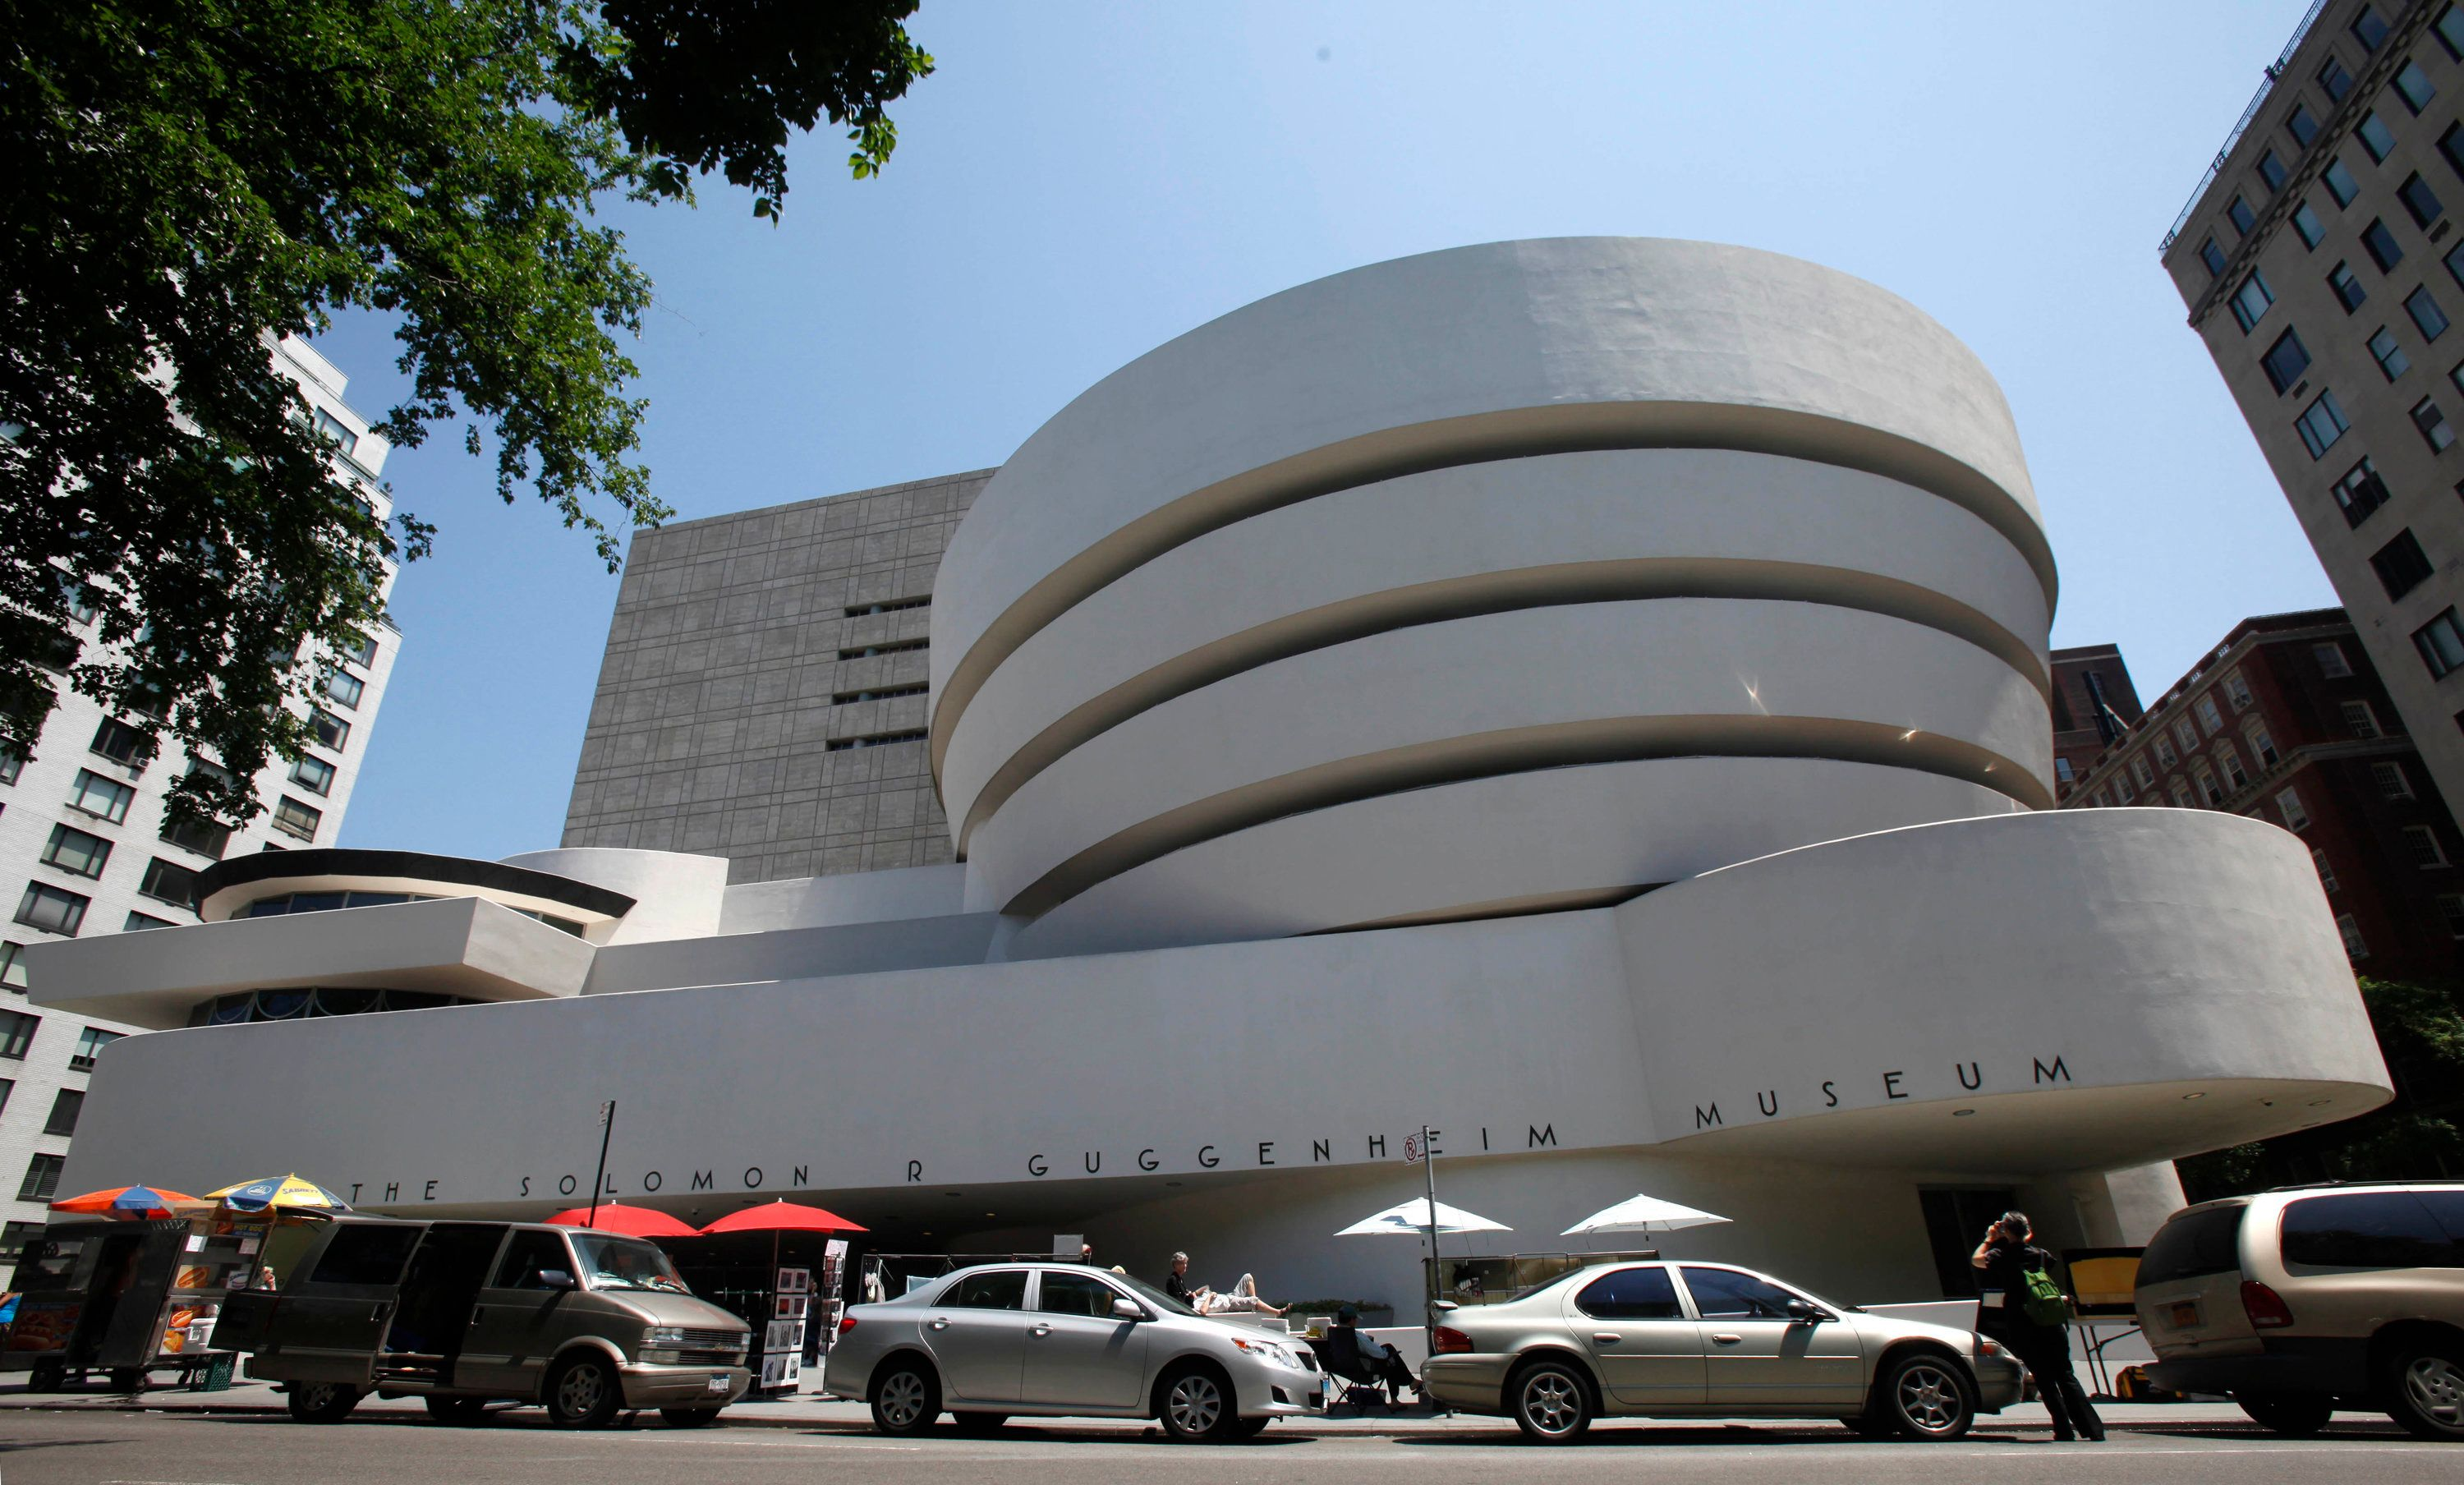 The Solomon R. Guggenheim Museum in New York has said that it will no longer accept financial donations from the Sackler fami